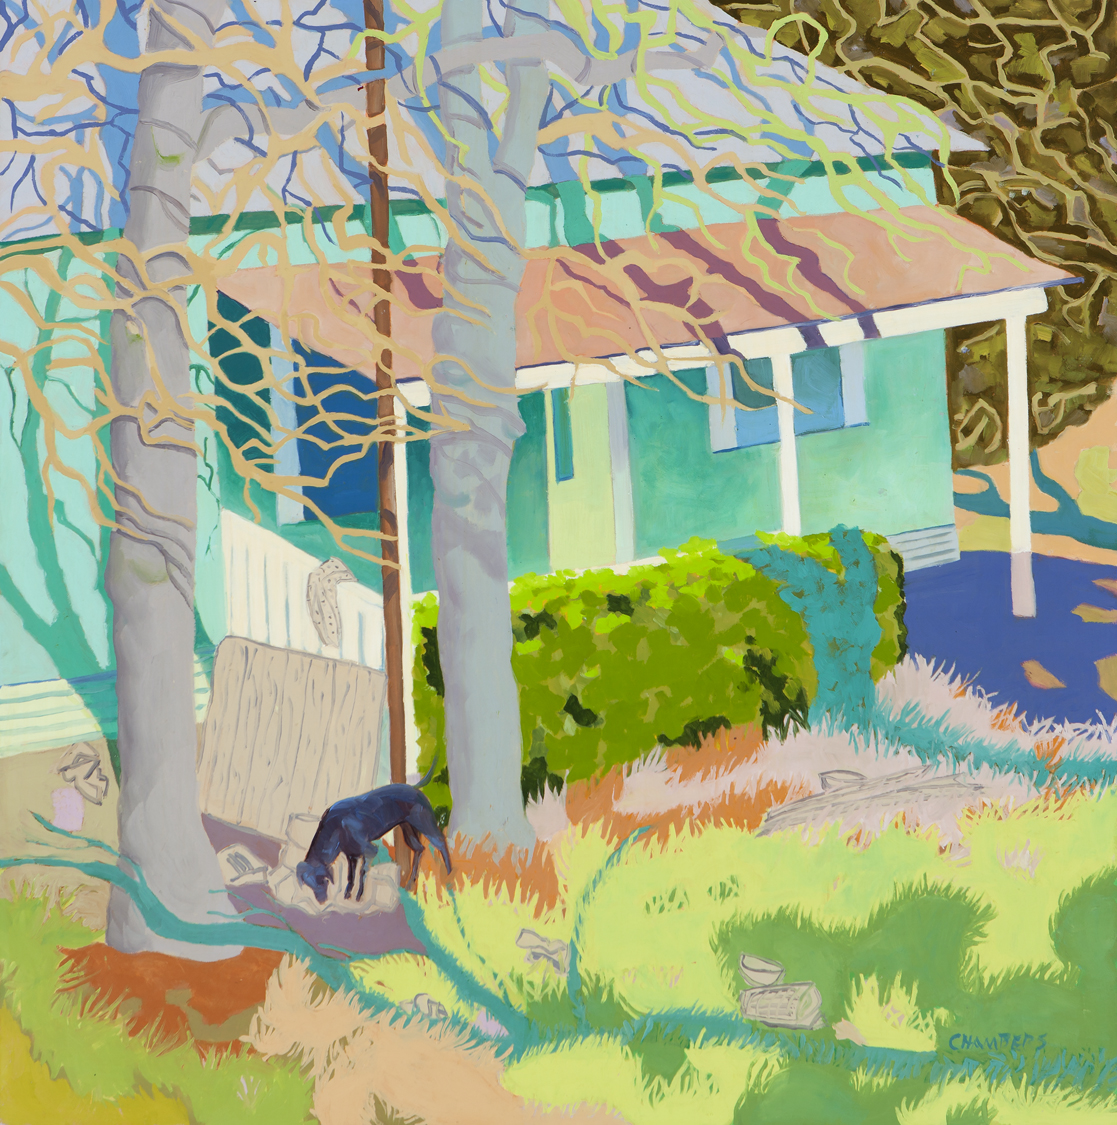 Lindy Chambers  Just another day in paradise, 2012. Oil on gessoboard, 30 x 30 inches